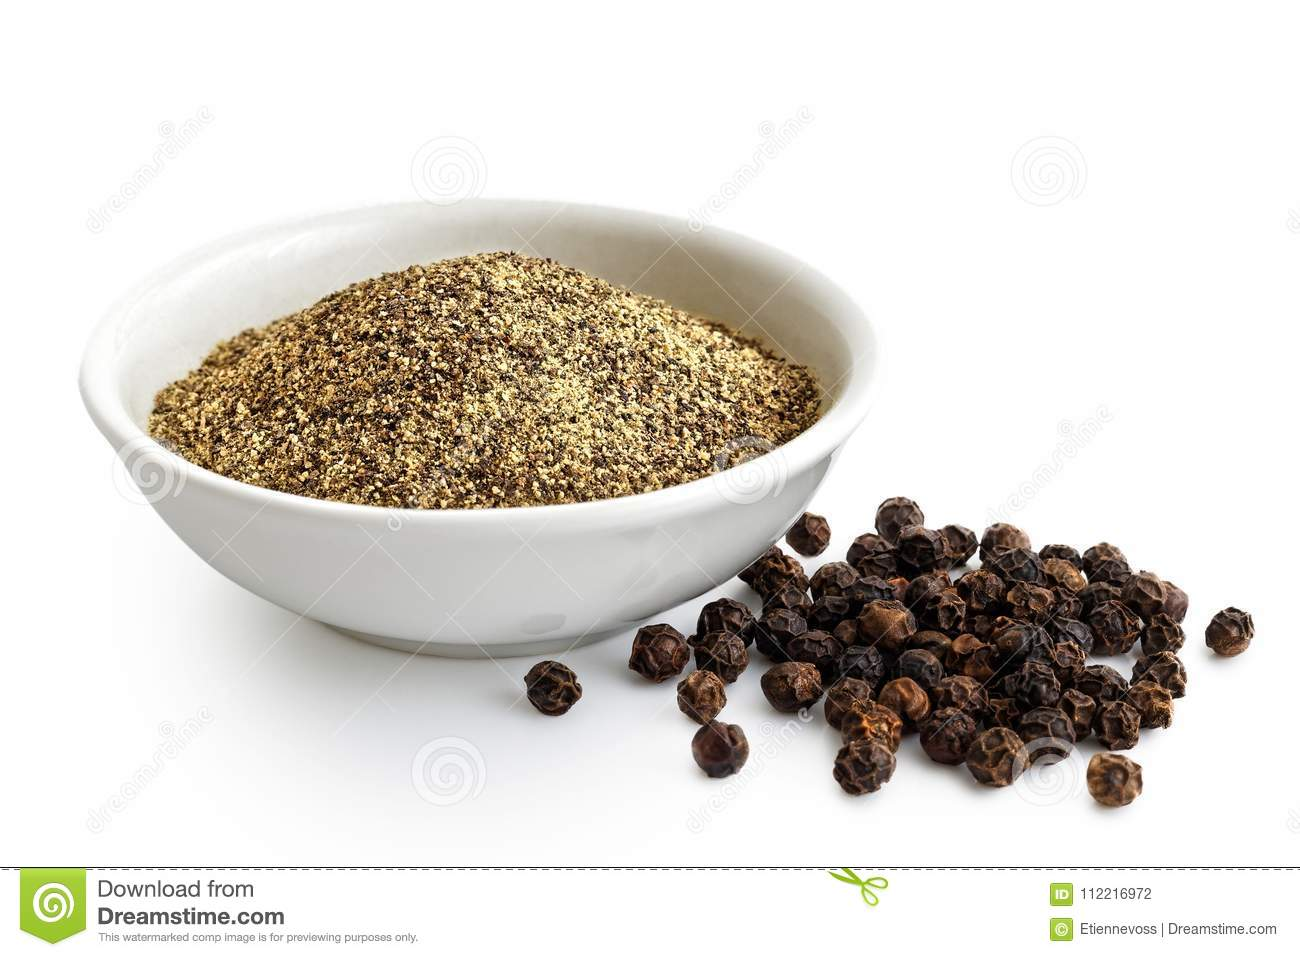 Finely ground black pepper in white ceramic bowl isolated on white. Black peppercorns.